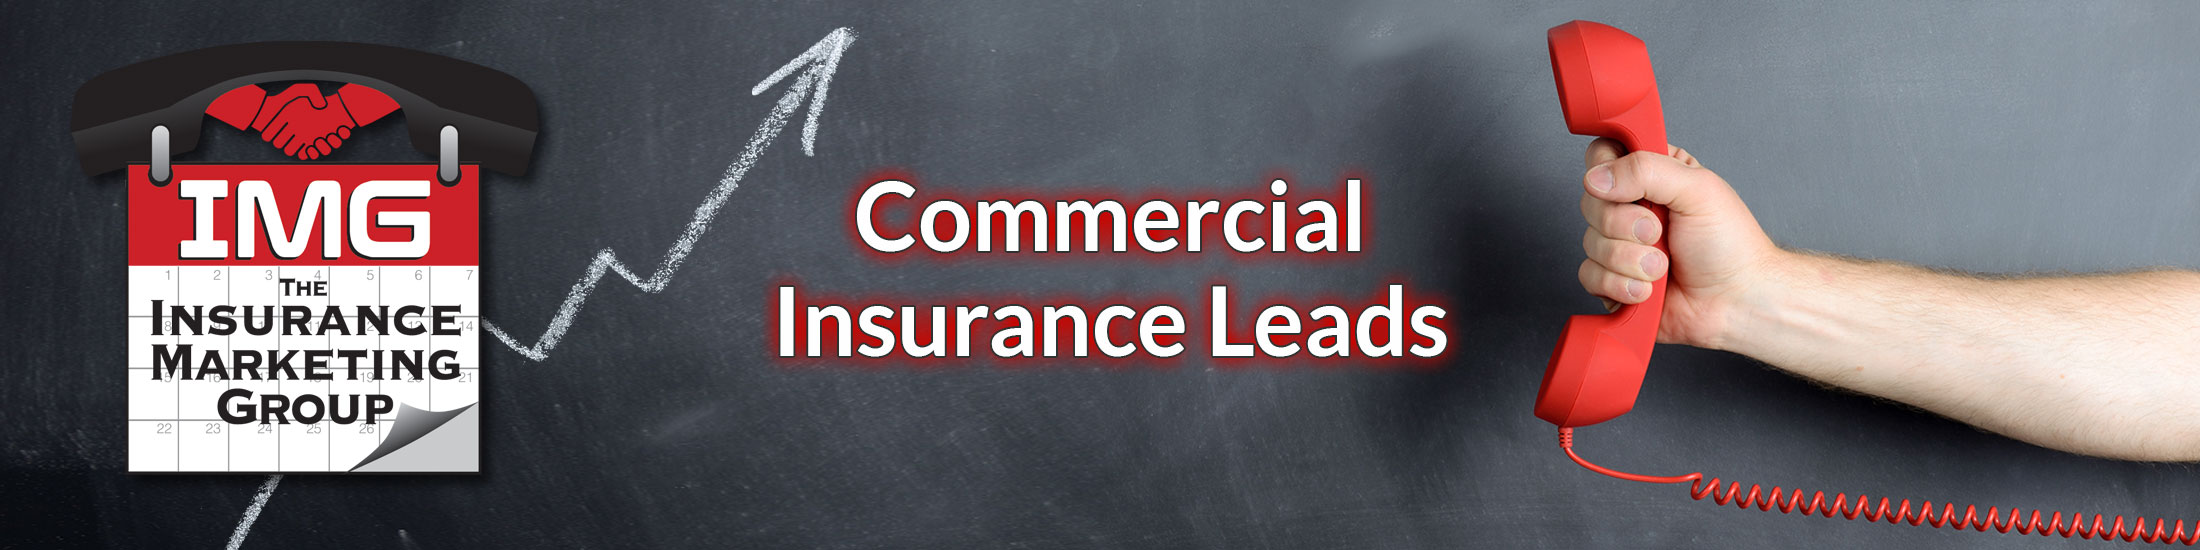 Increase commercial insurance leads with The Insurance Marketing Group